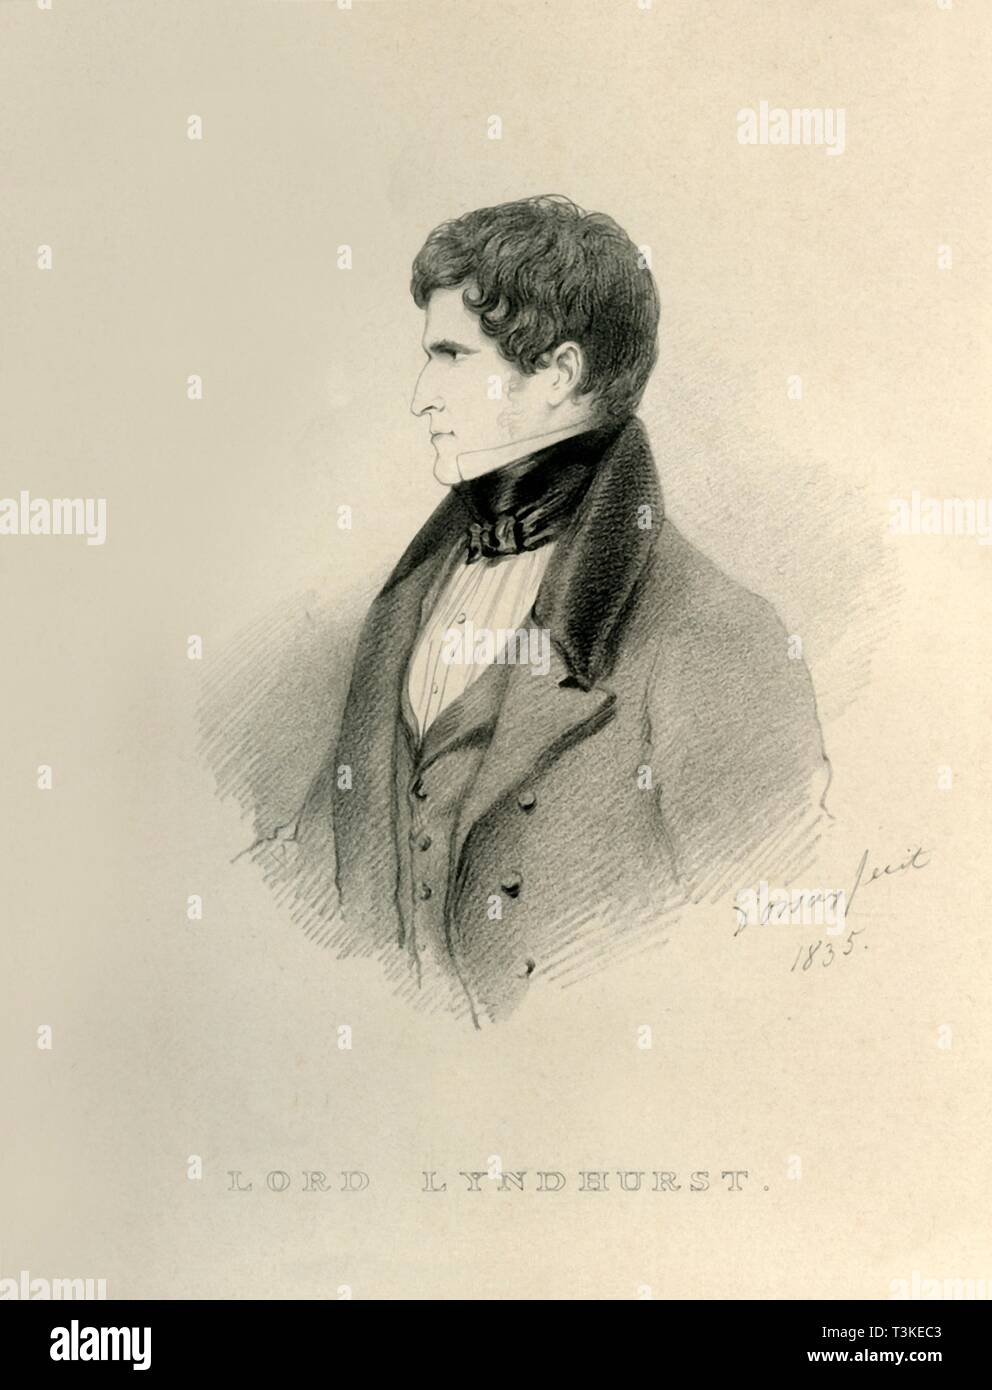 'Lord Lyndhurst', 1835. DELETE - duplicate Creator: Alfred d'Orsay. - Stock Image